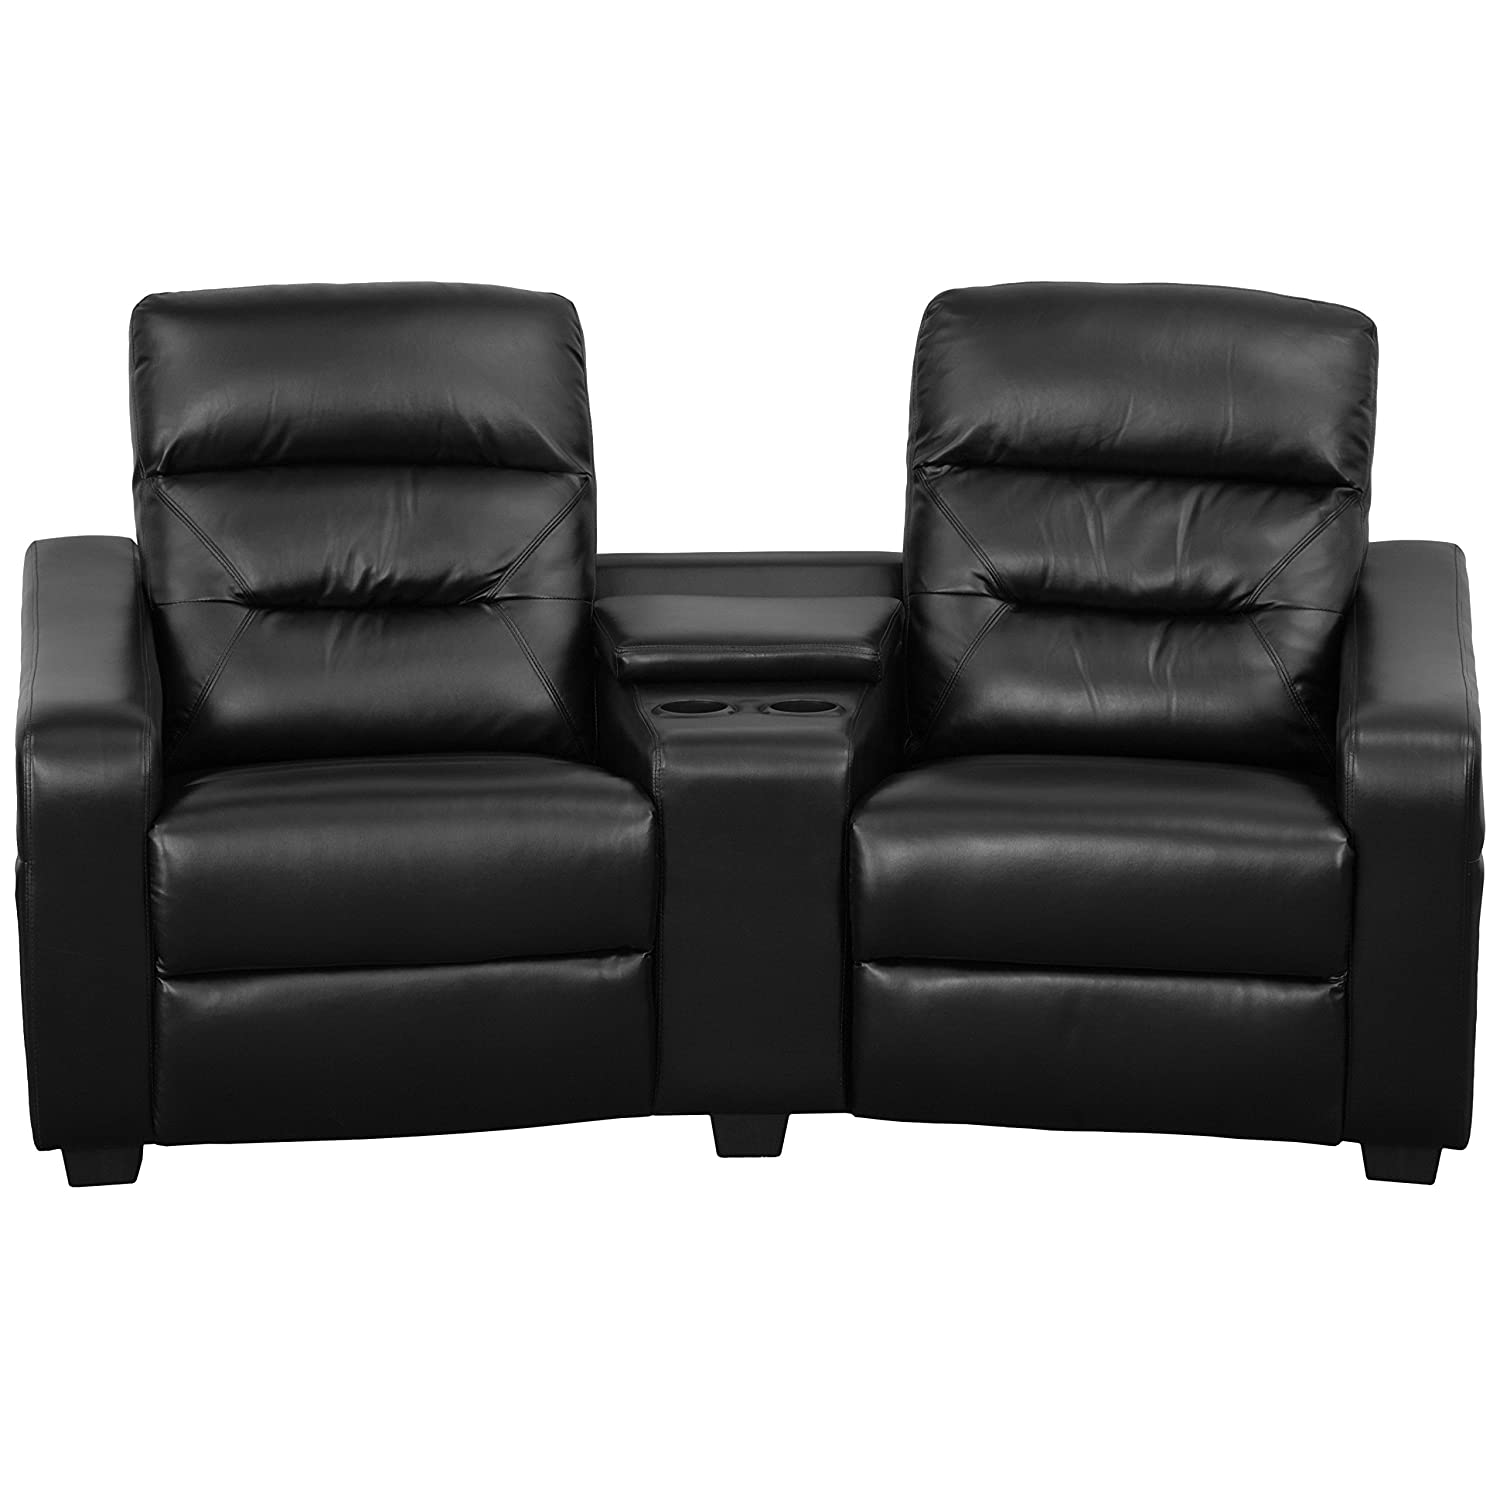 Amazon.com: Flash Furniture Futura Series 2 Seat Reclining Black Leather  Theater Seating Unit With Cup Holders: Kitchen U0026 Dining